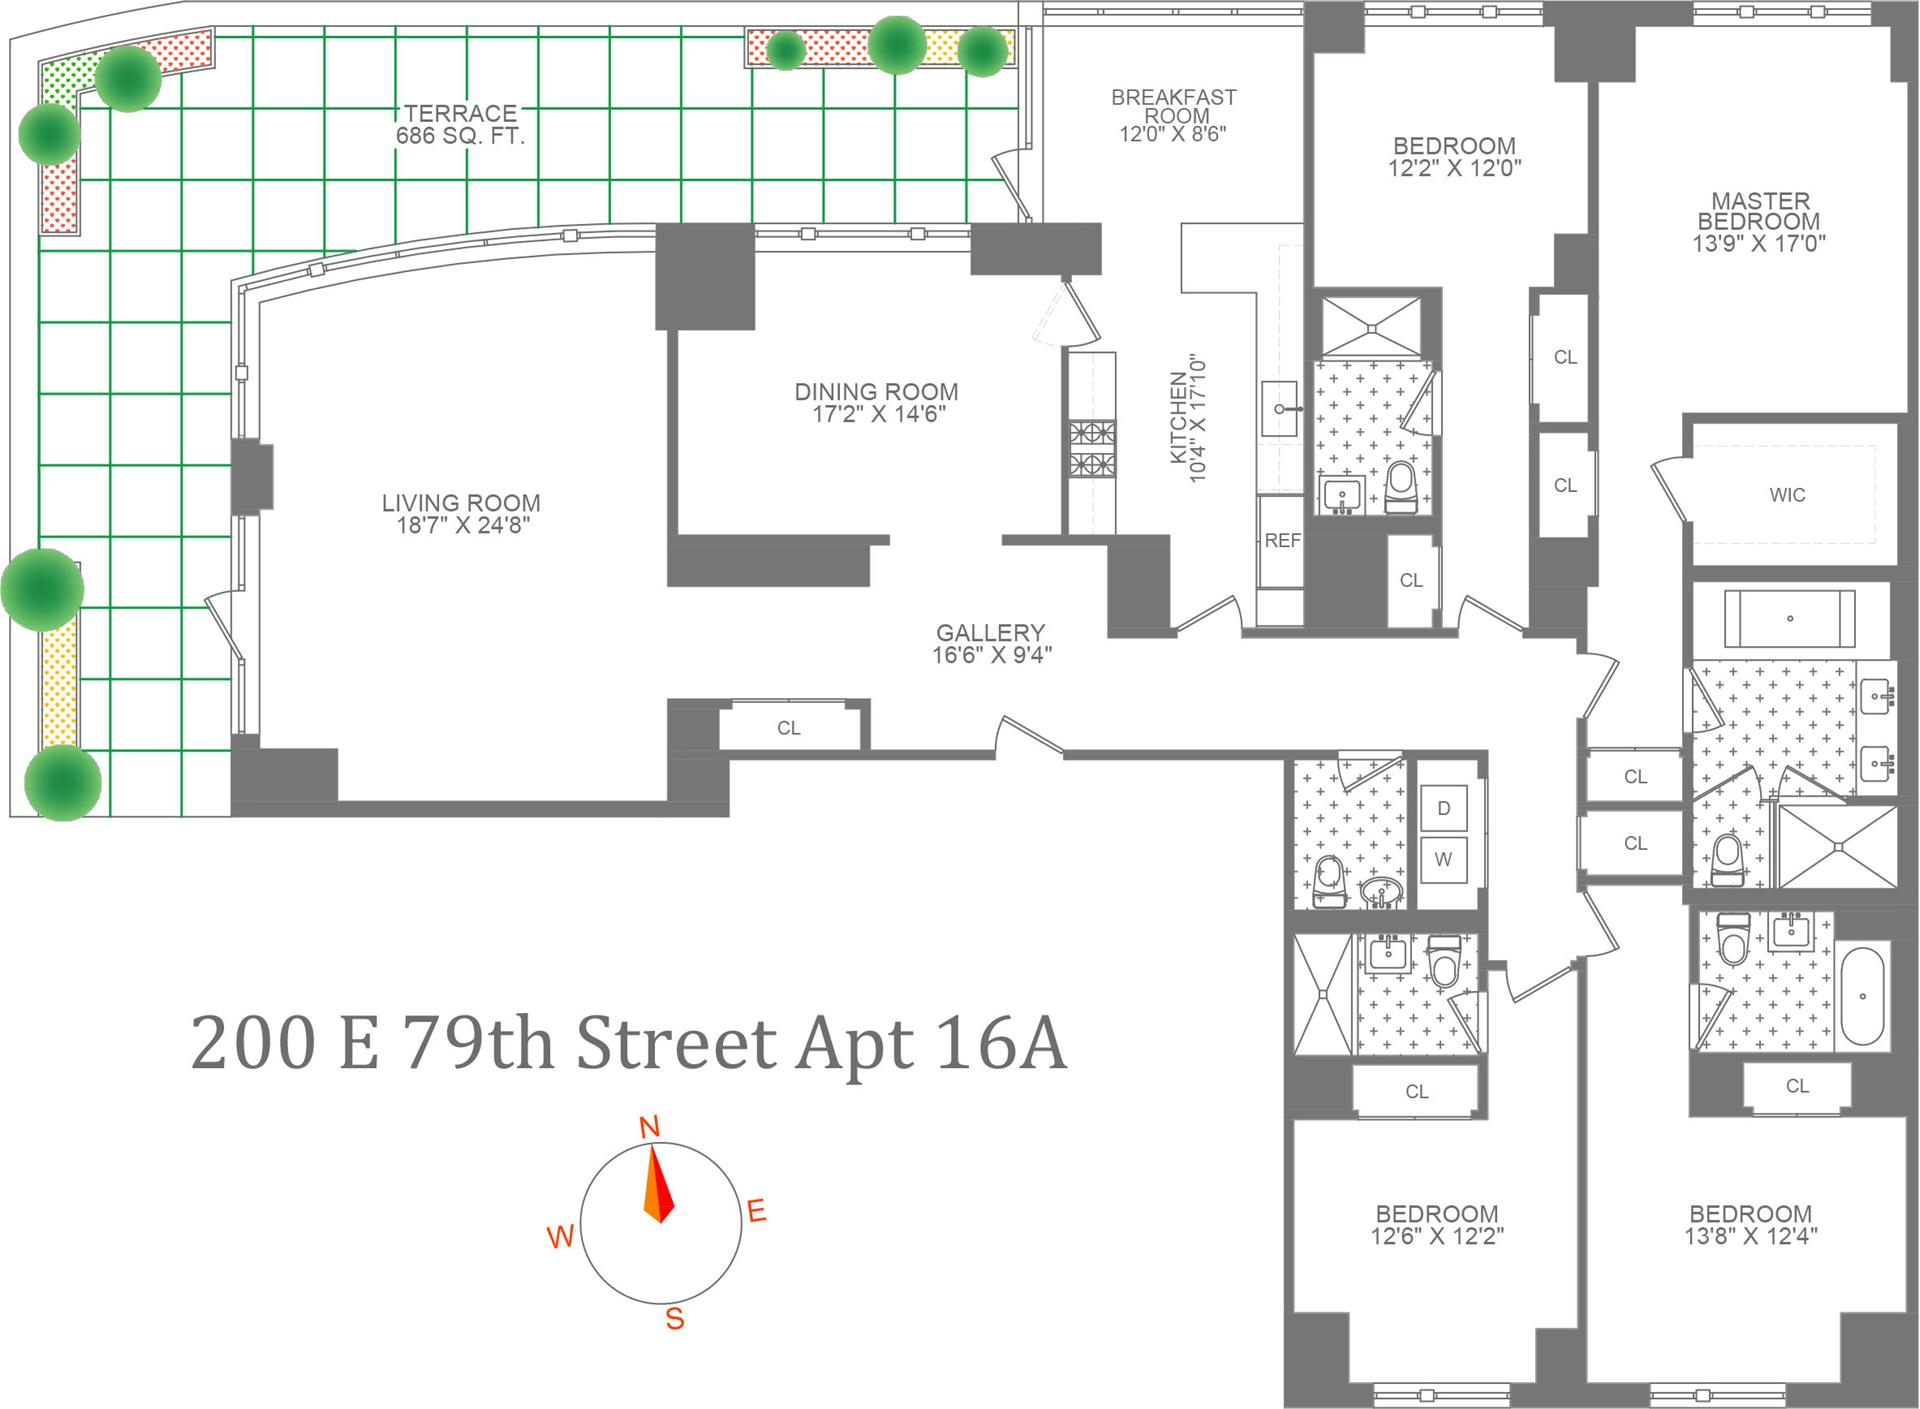 Floor plan of 200 East 79th St, 16A - Upper East Side, New York